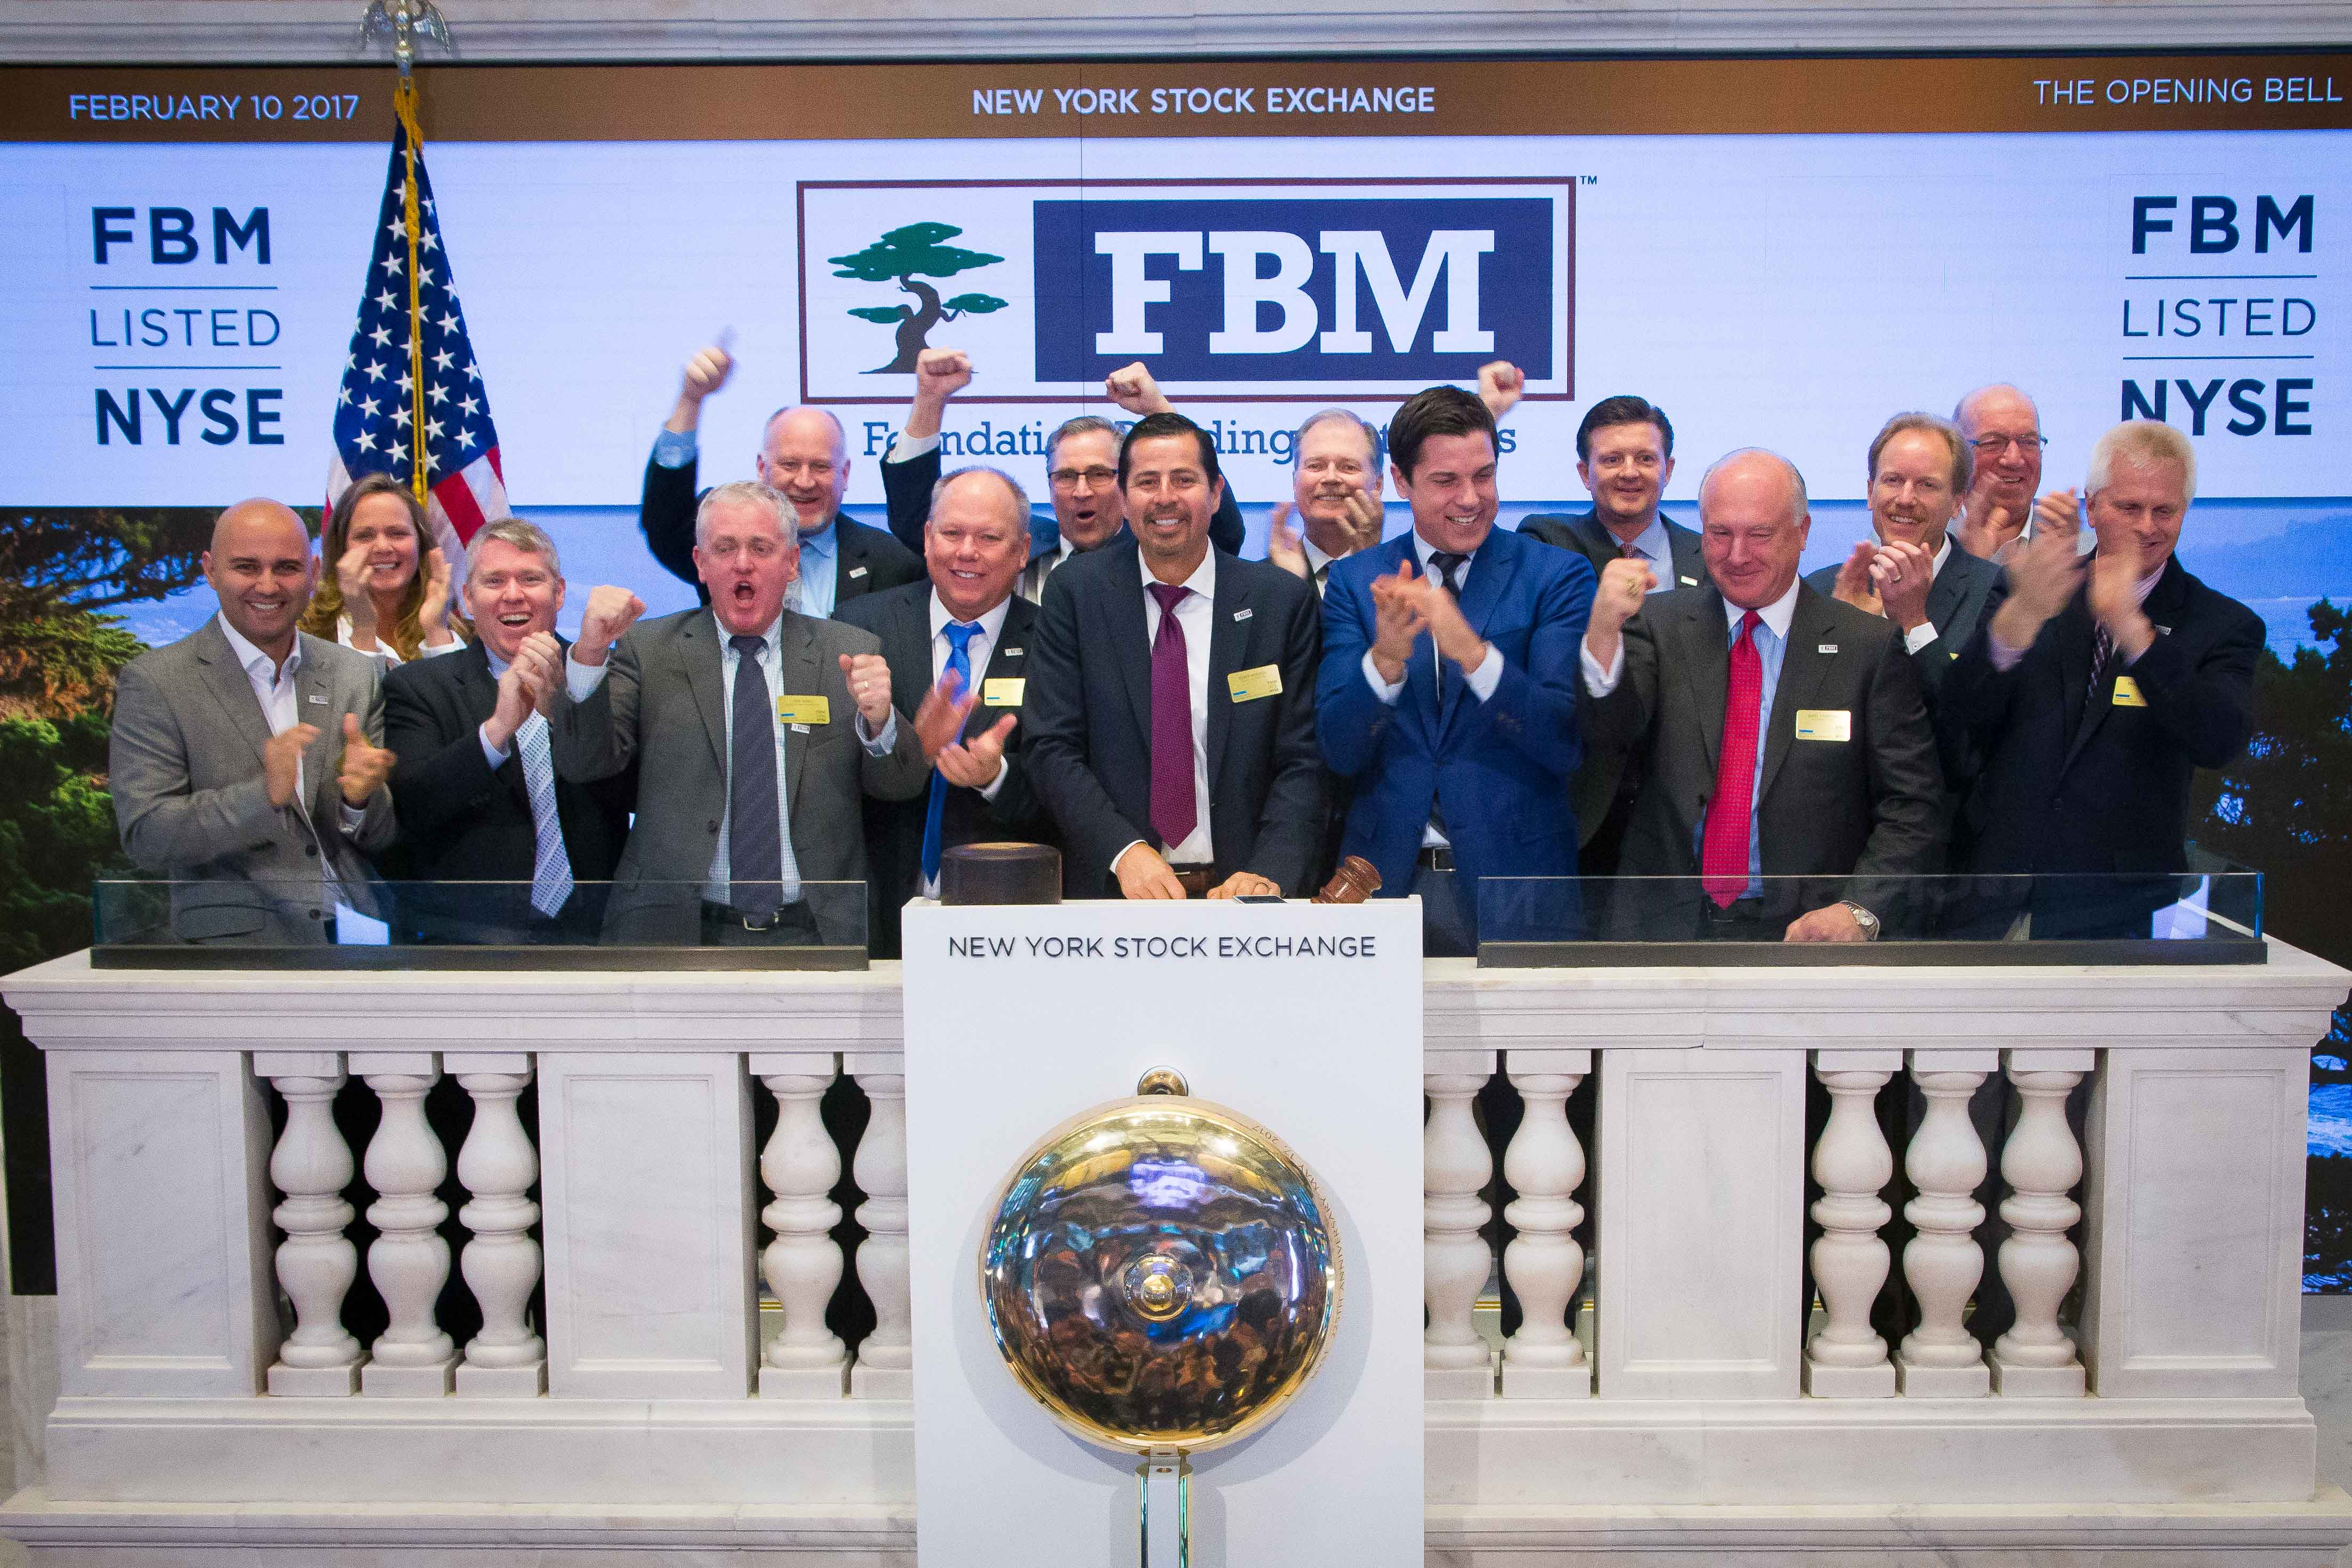 Foundation Building Materials Listed on the New York Stock Exchange, February 10, 2017